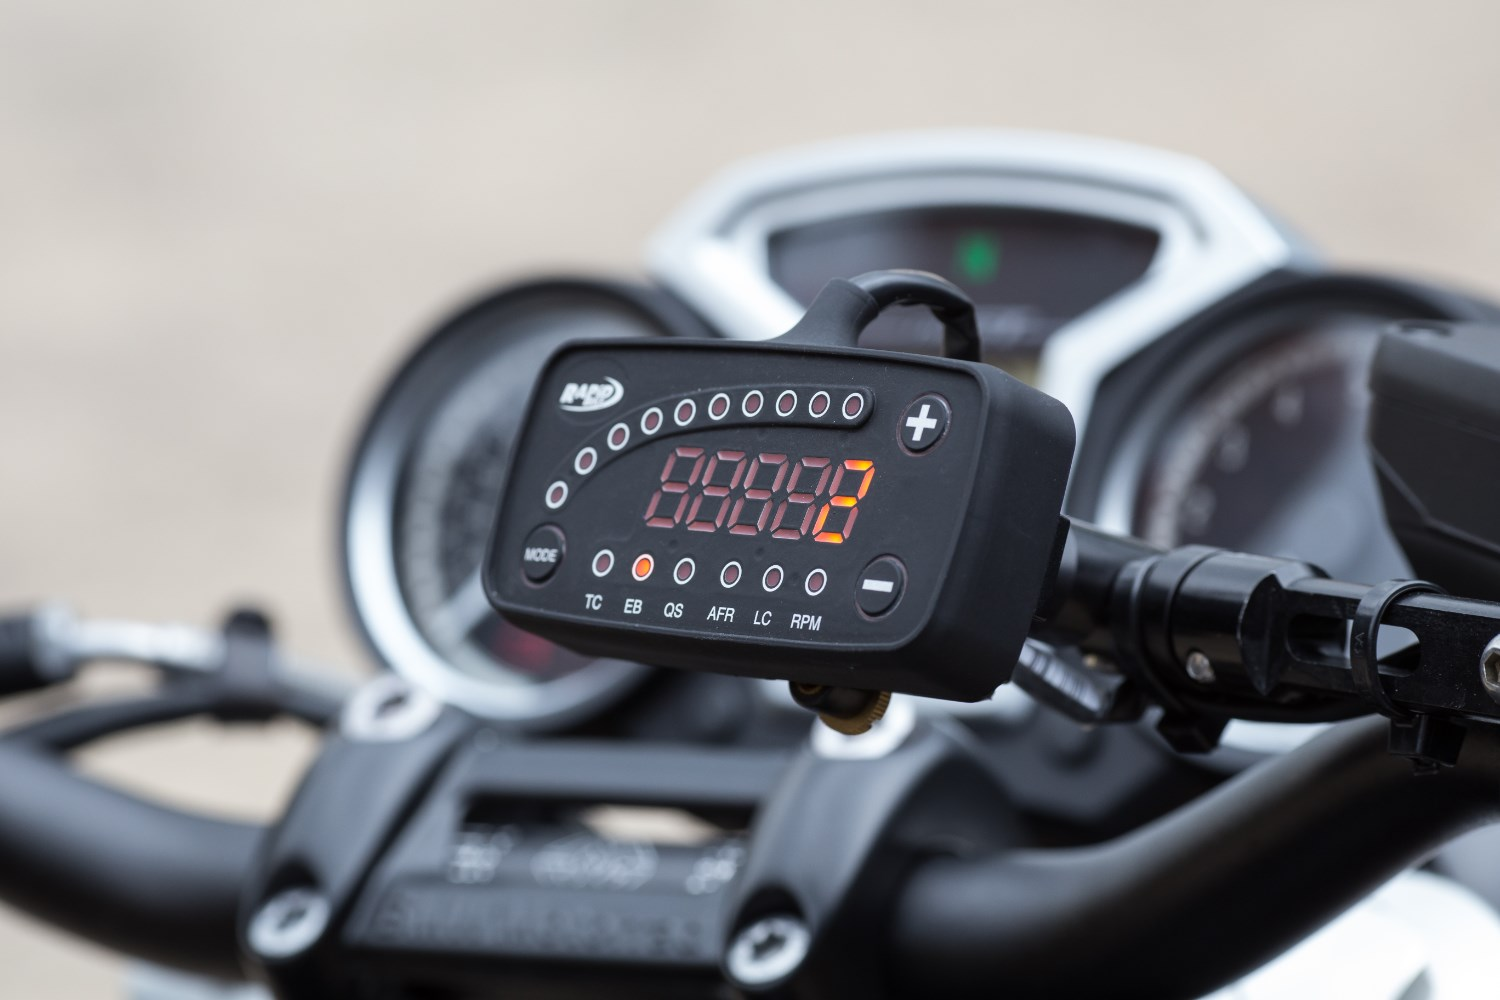 The Black Box This is the Rapid Bike control panel, where you can change settings for traction control (TC), engine braking (EB), quickshifter (QS), launch control (LC) and – careful now – the air fuel ratio (AFR). All the changes happen in real time.